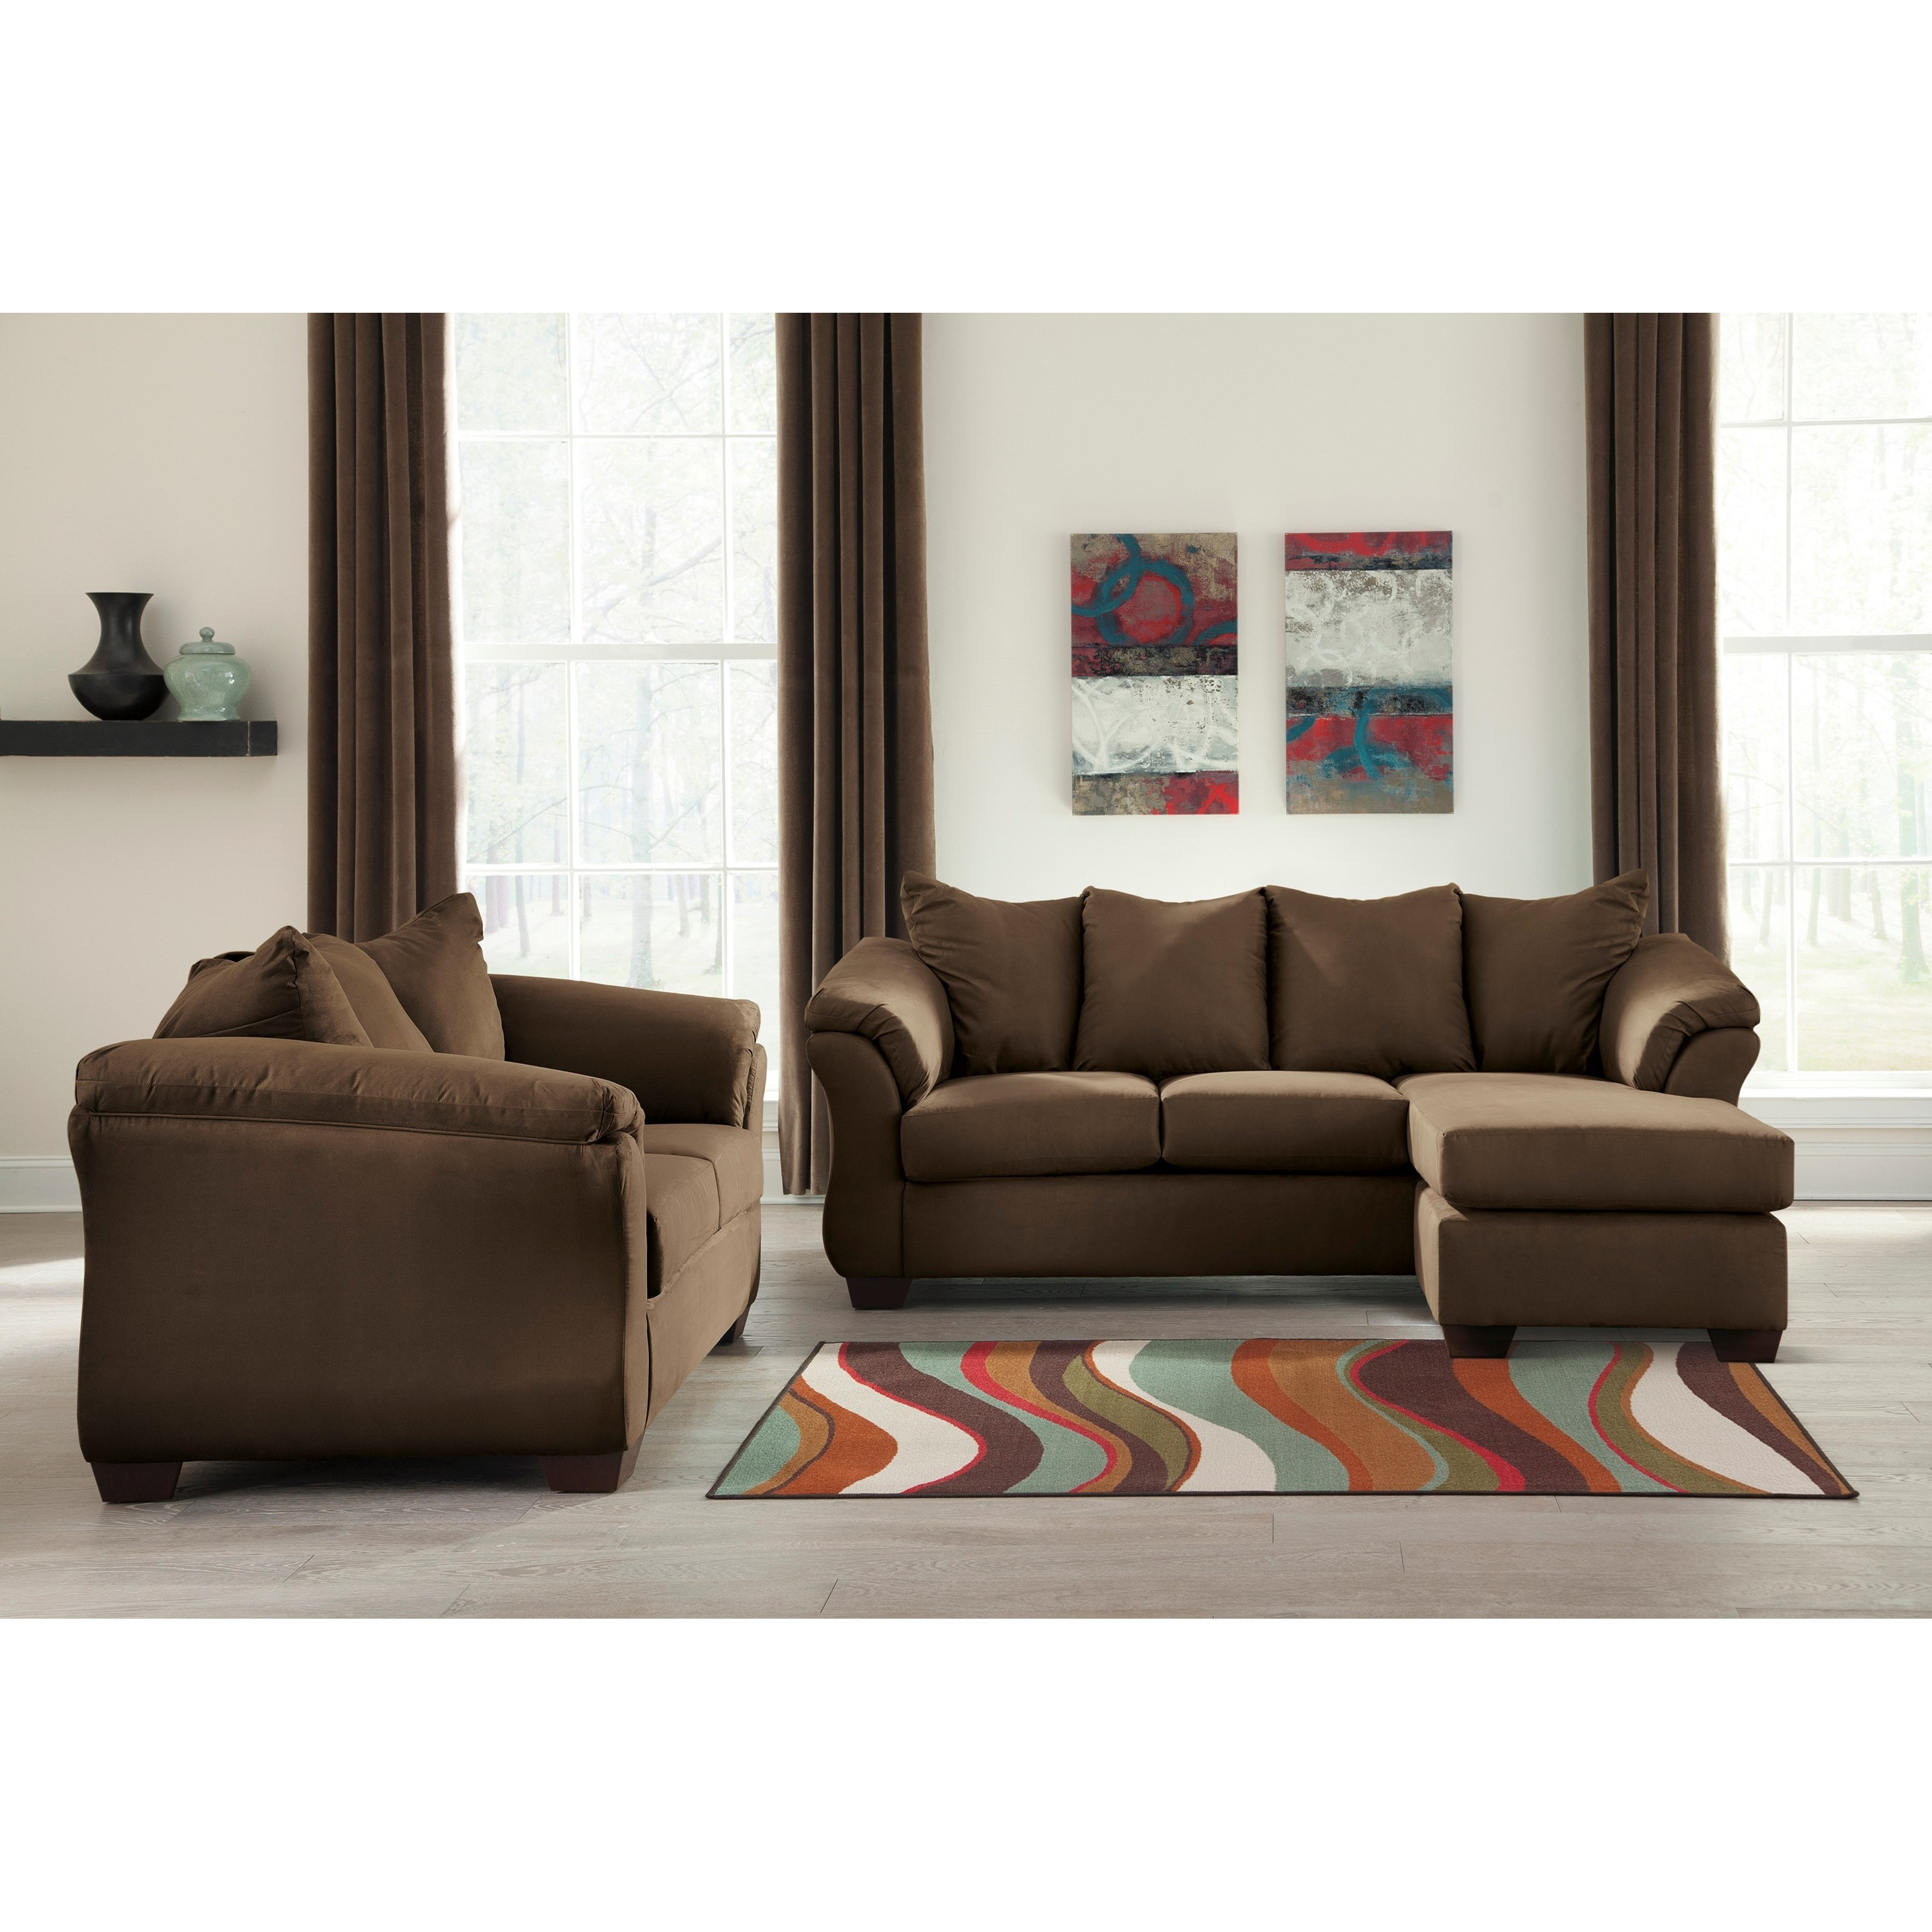 Darcy - Cafe Stationary Living Room Group by Signature Design by Ashley at Zak's Home Outlet